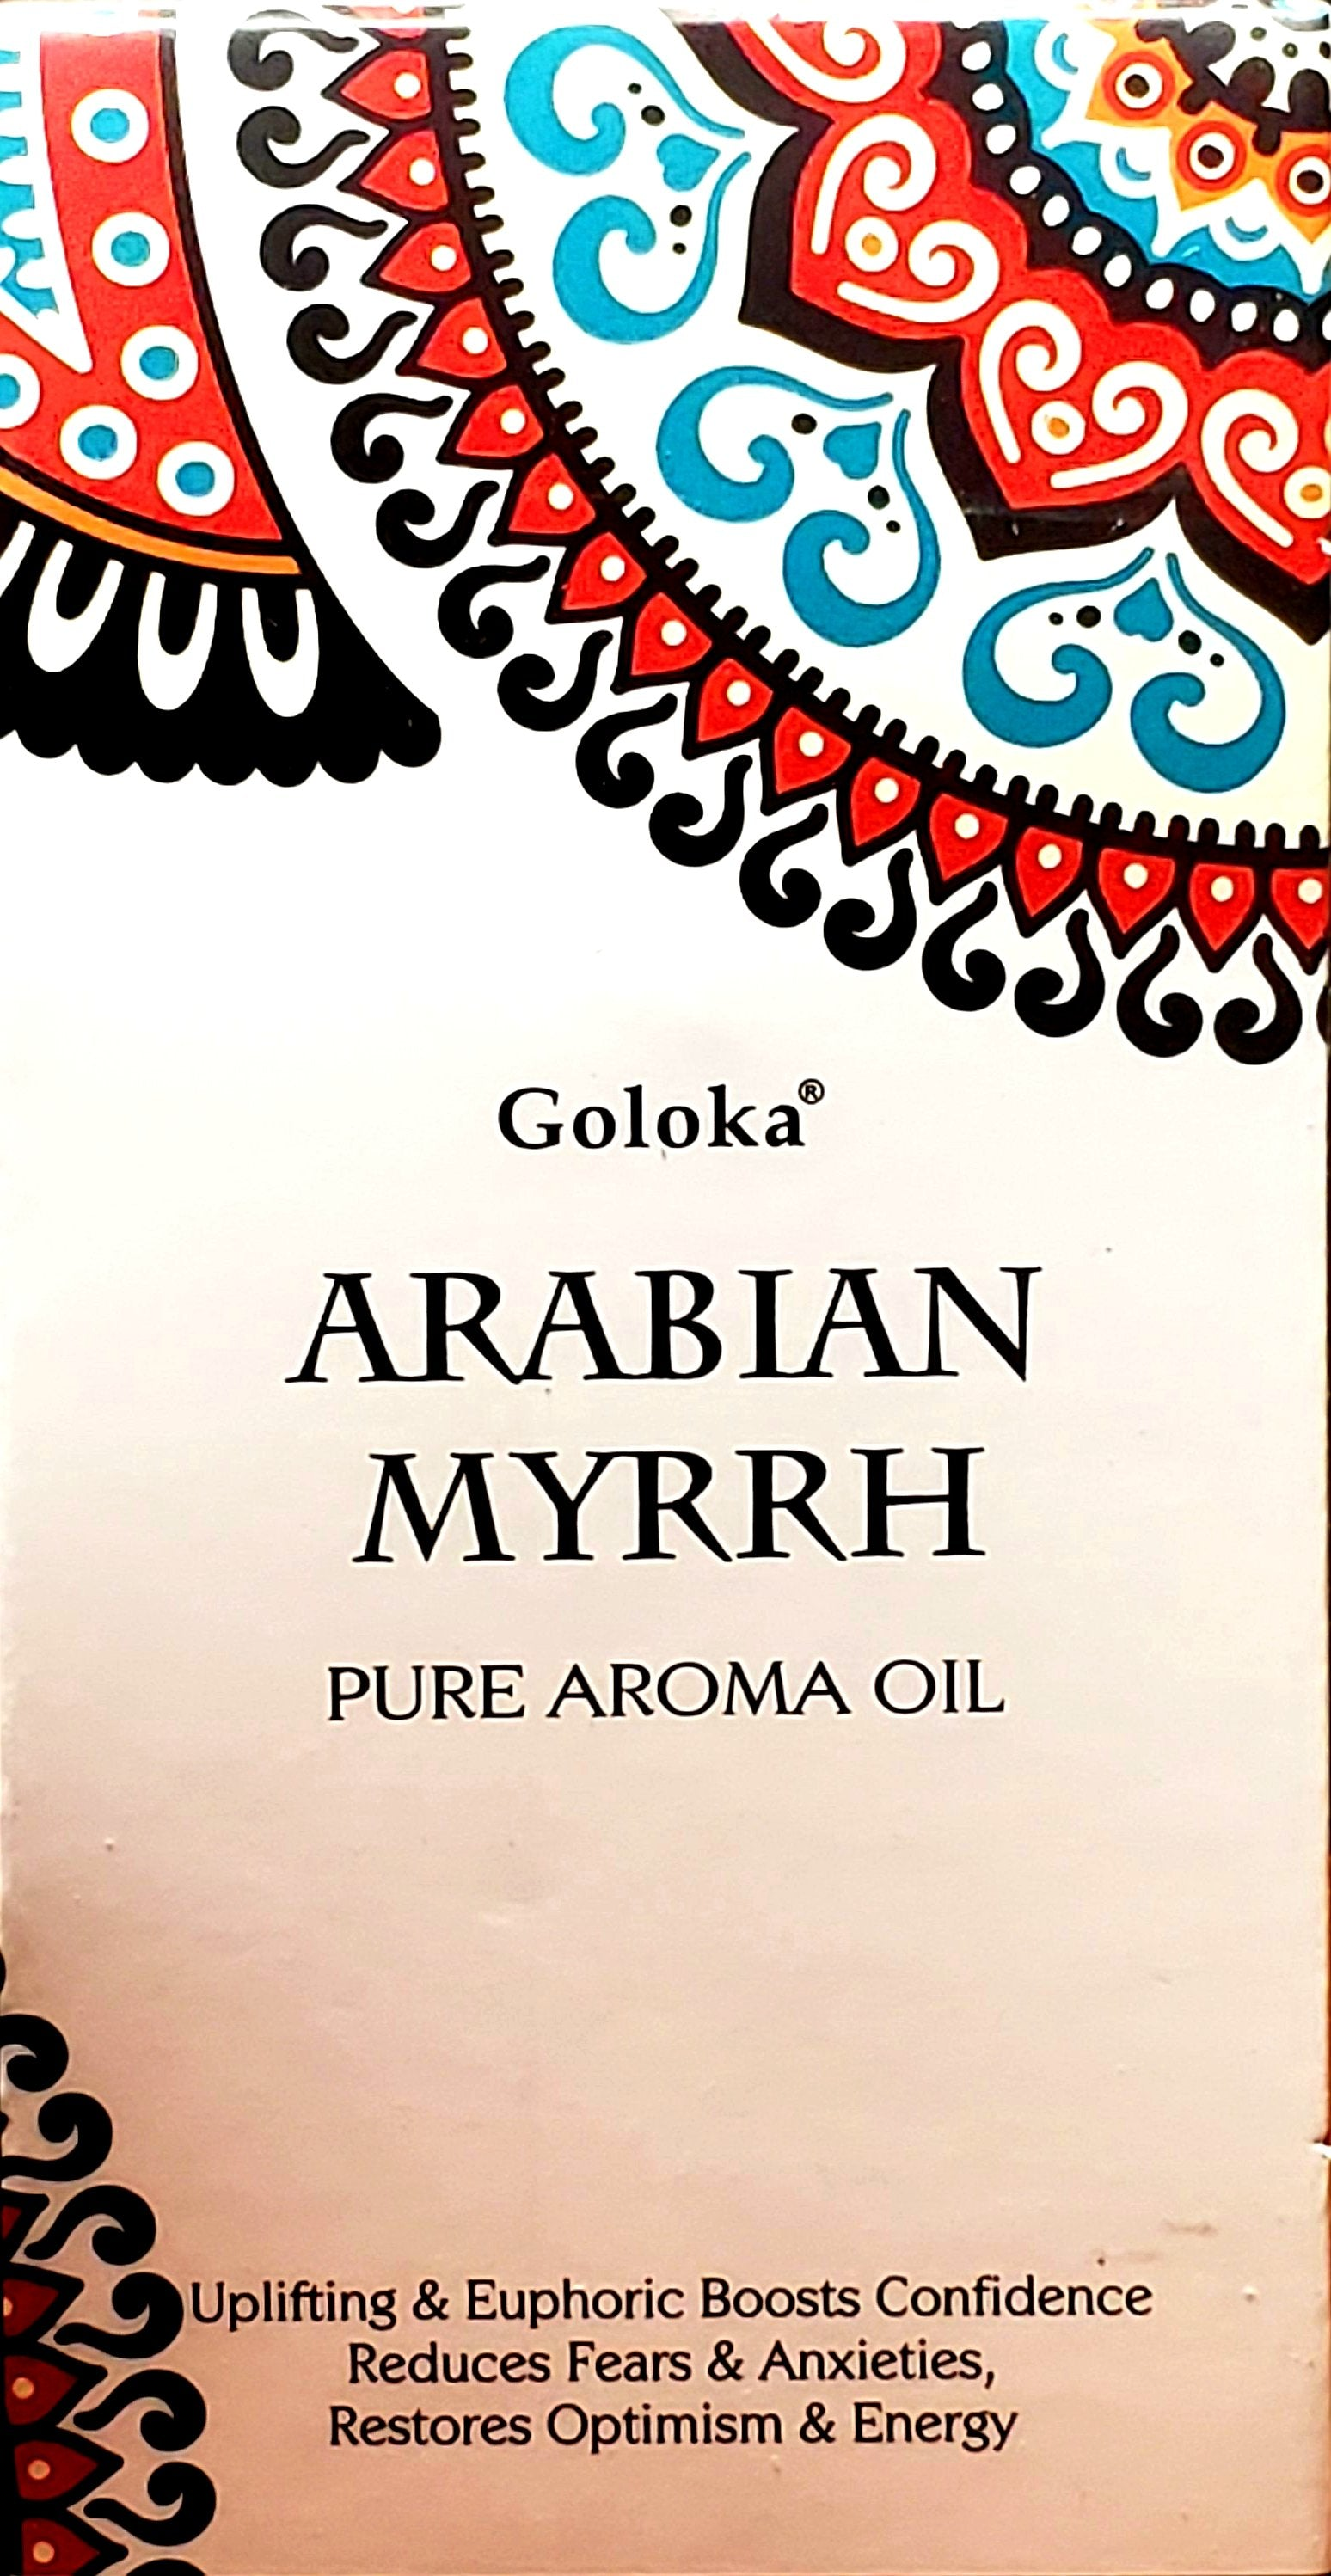 Goloka Natural Aromatherapy Oils | 10 ml Bottle | For Diffuser